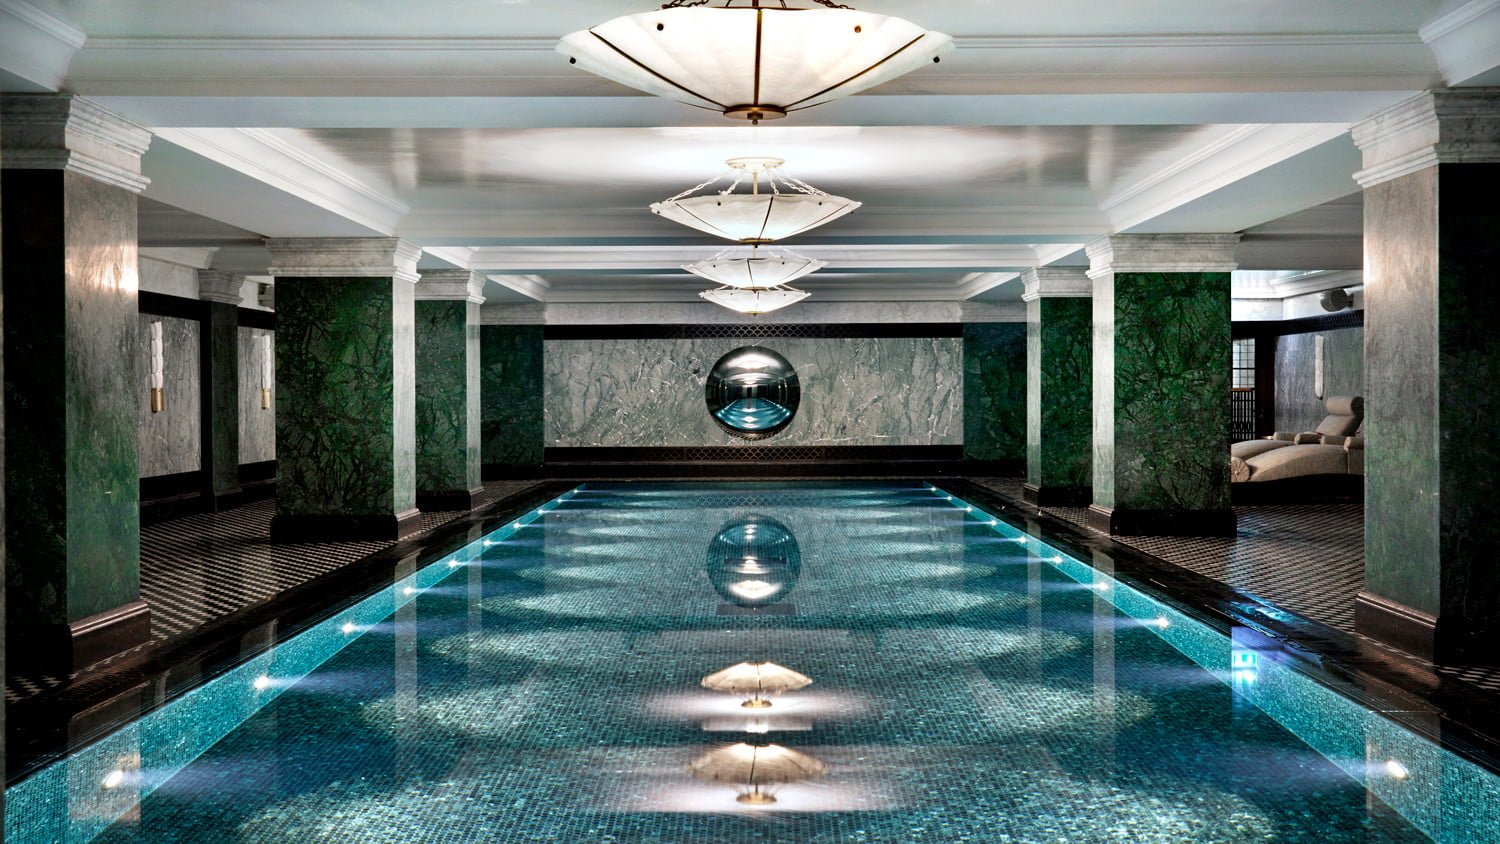 hotel review the ned london copyright downstairs pool 170503 sb hr 01